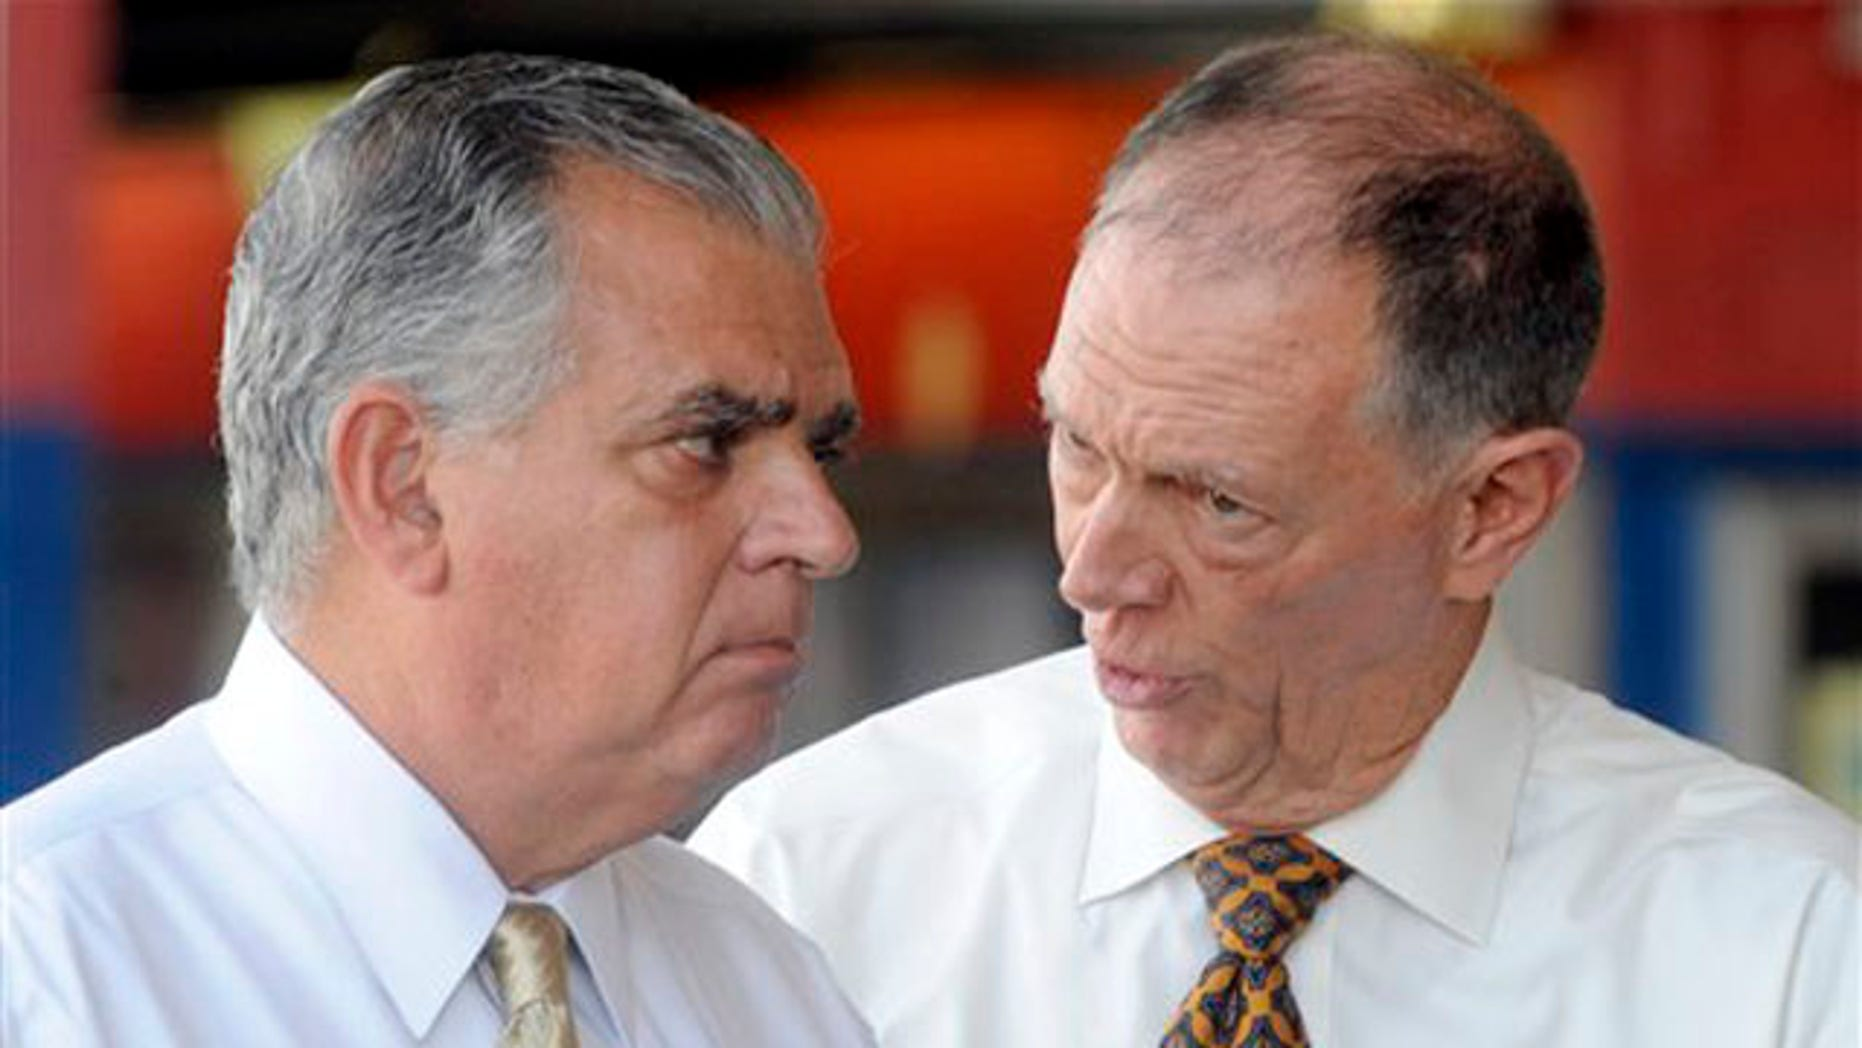 Transportation Secretary Ray LaHood, left, talks to FAA Administrator Randy Babbitt during a news conference to discuss the interruption of FAA funding in New York Aug. 1.